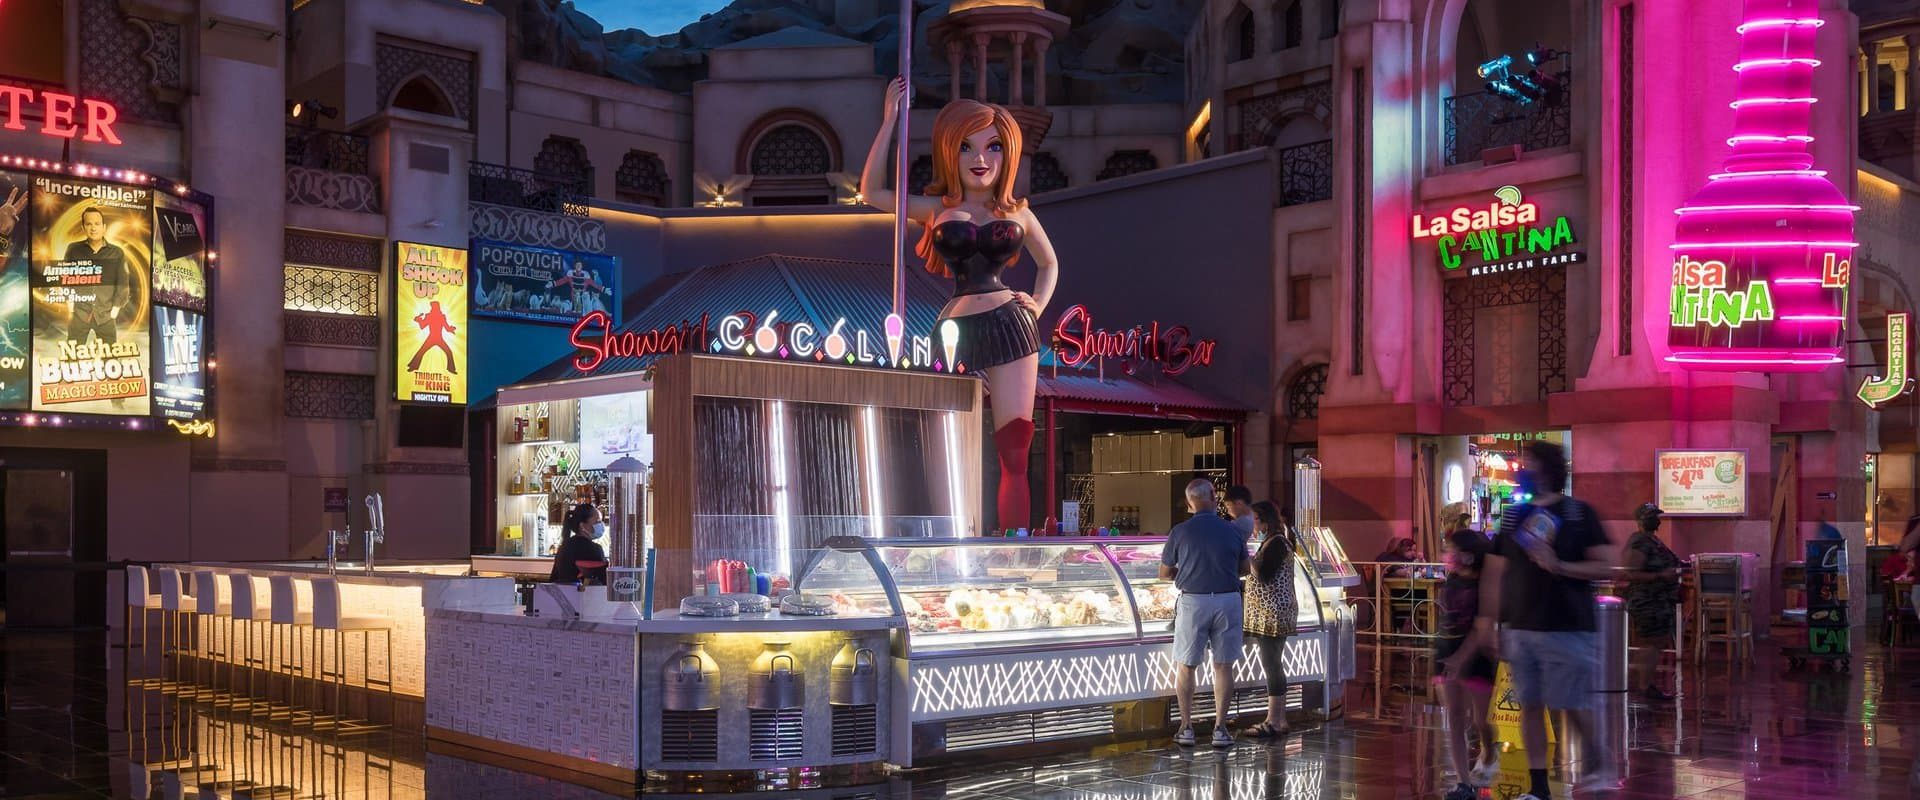 Cocolini located inside the Miracle Mile shops on the Las Vegas Strip.